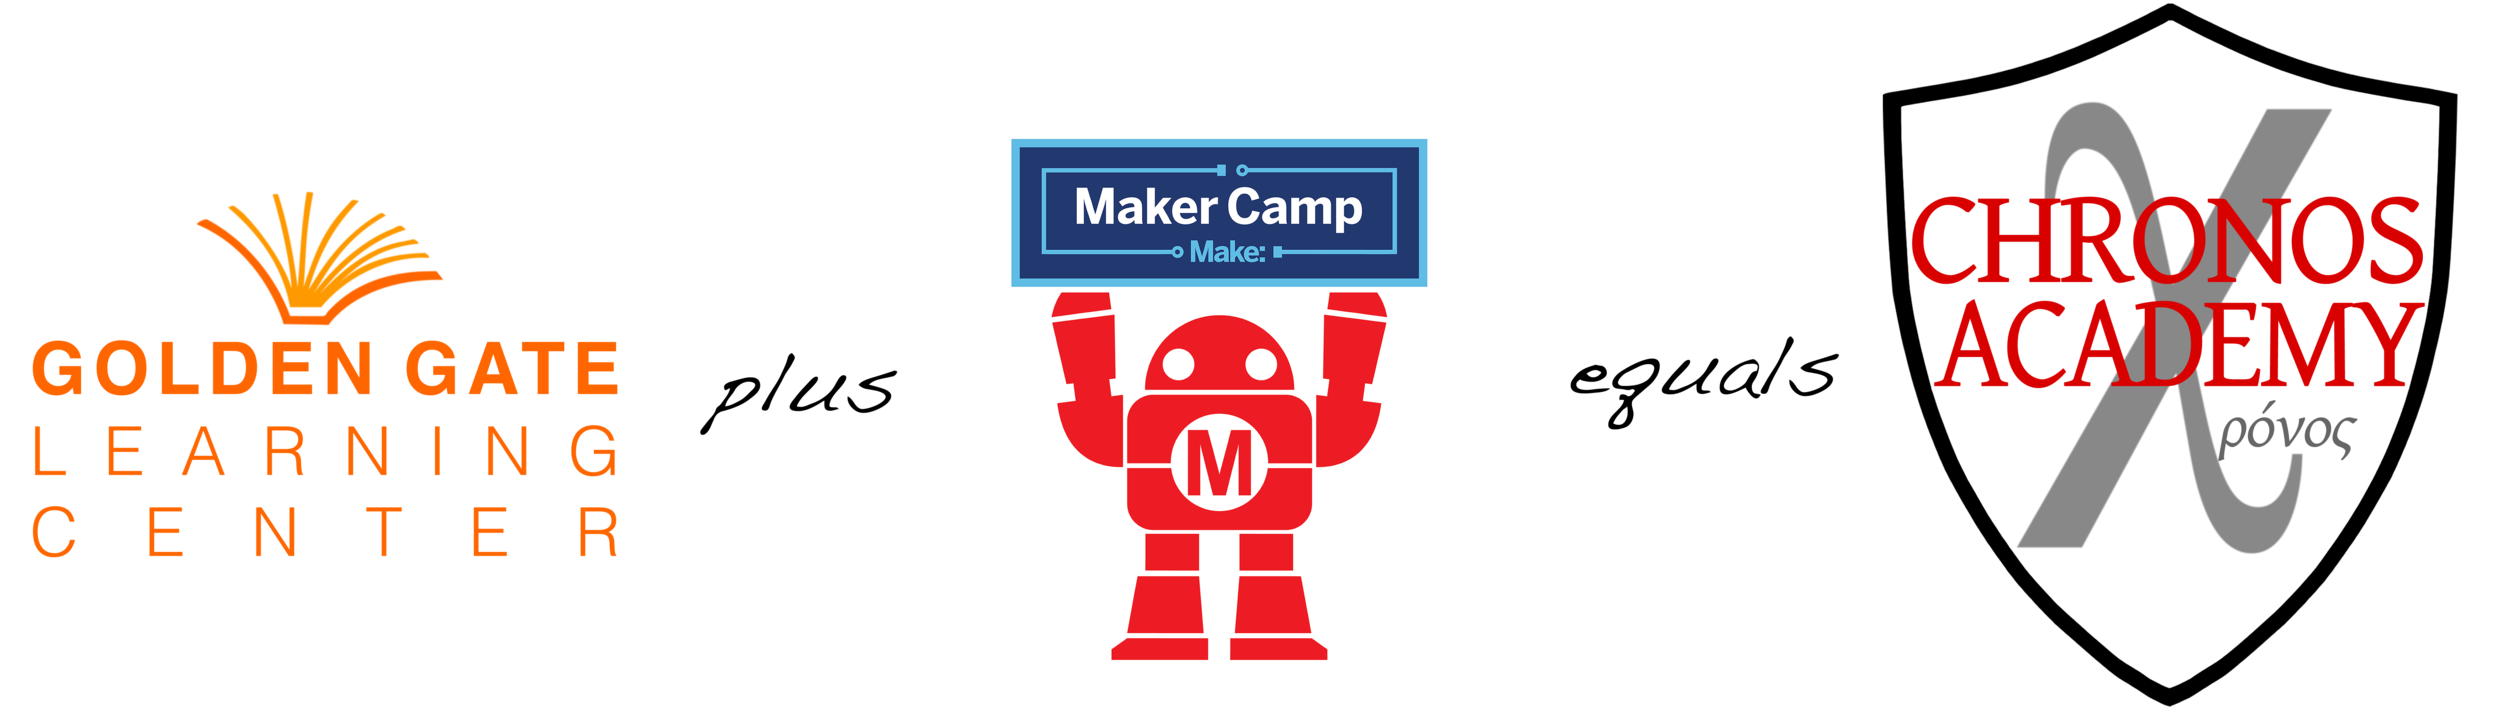 GGLC plus Maker Camp equals CA.fw.png